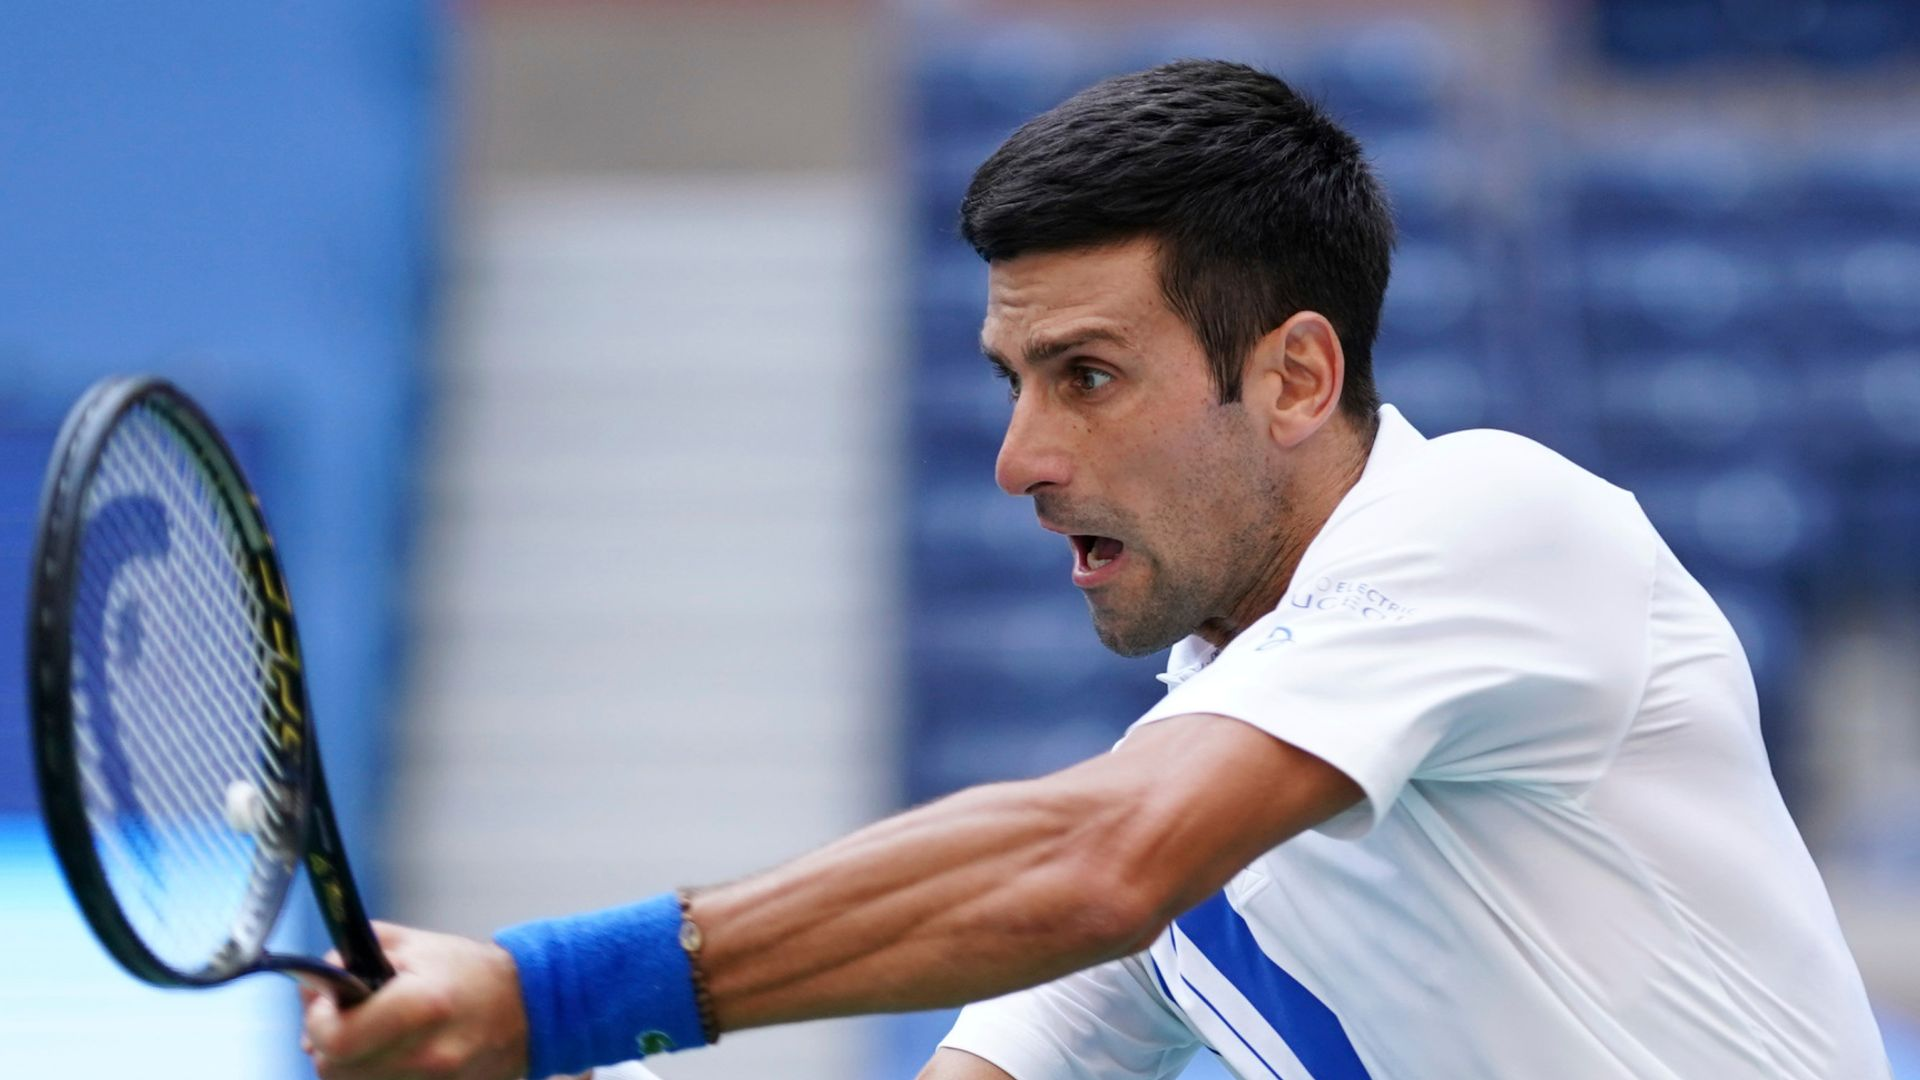 Djokovic set to return after injury scare - sky sports